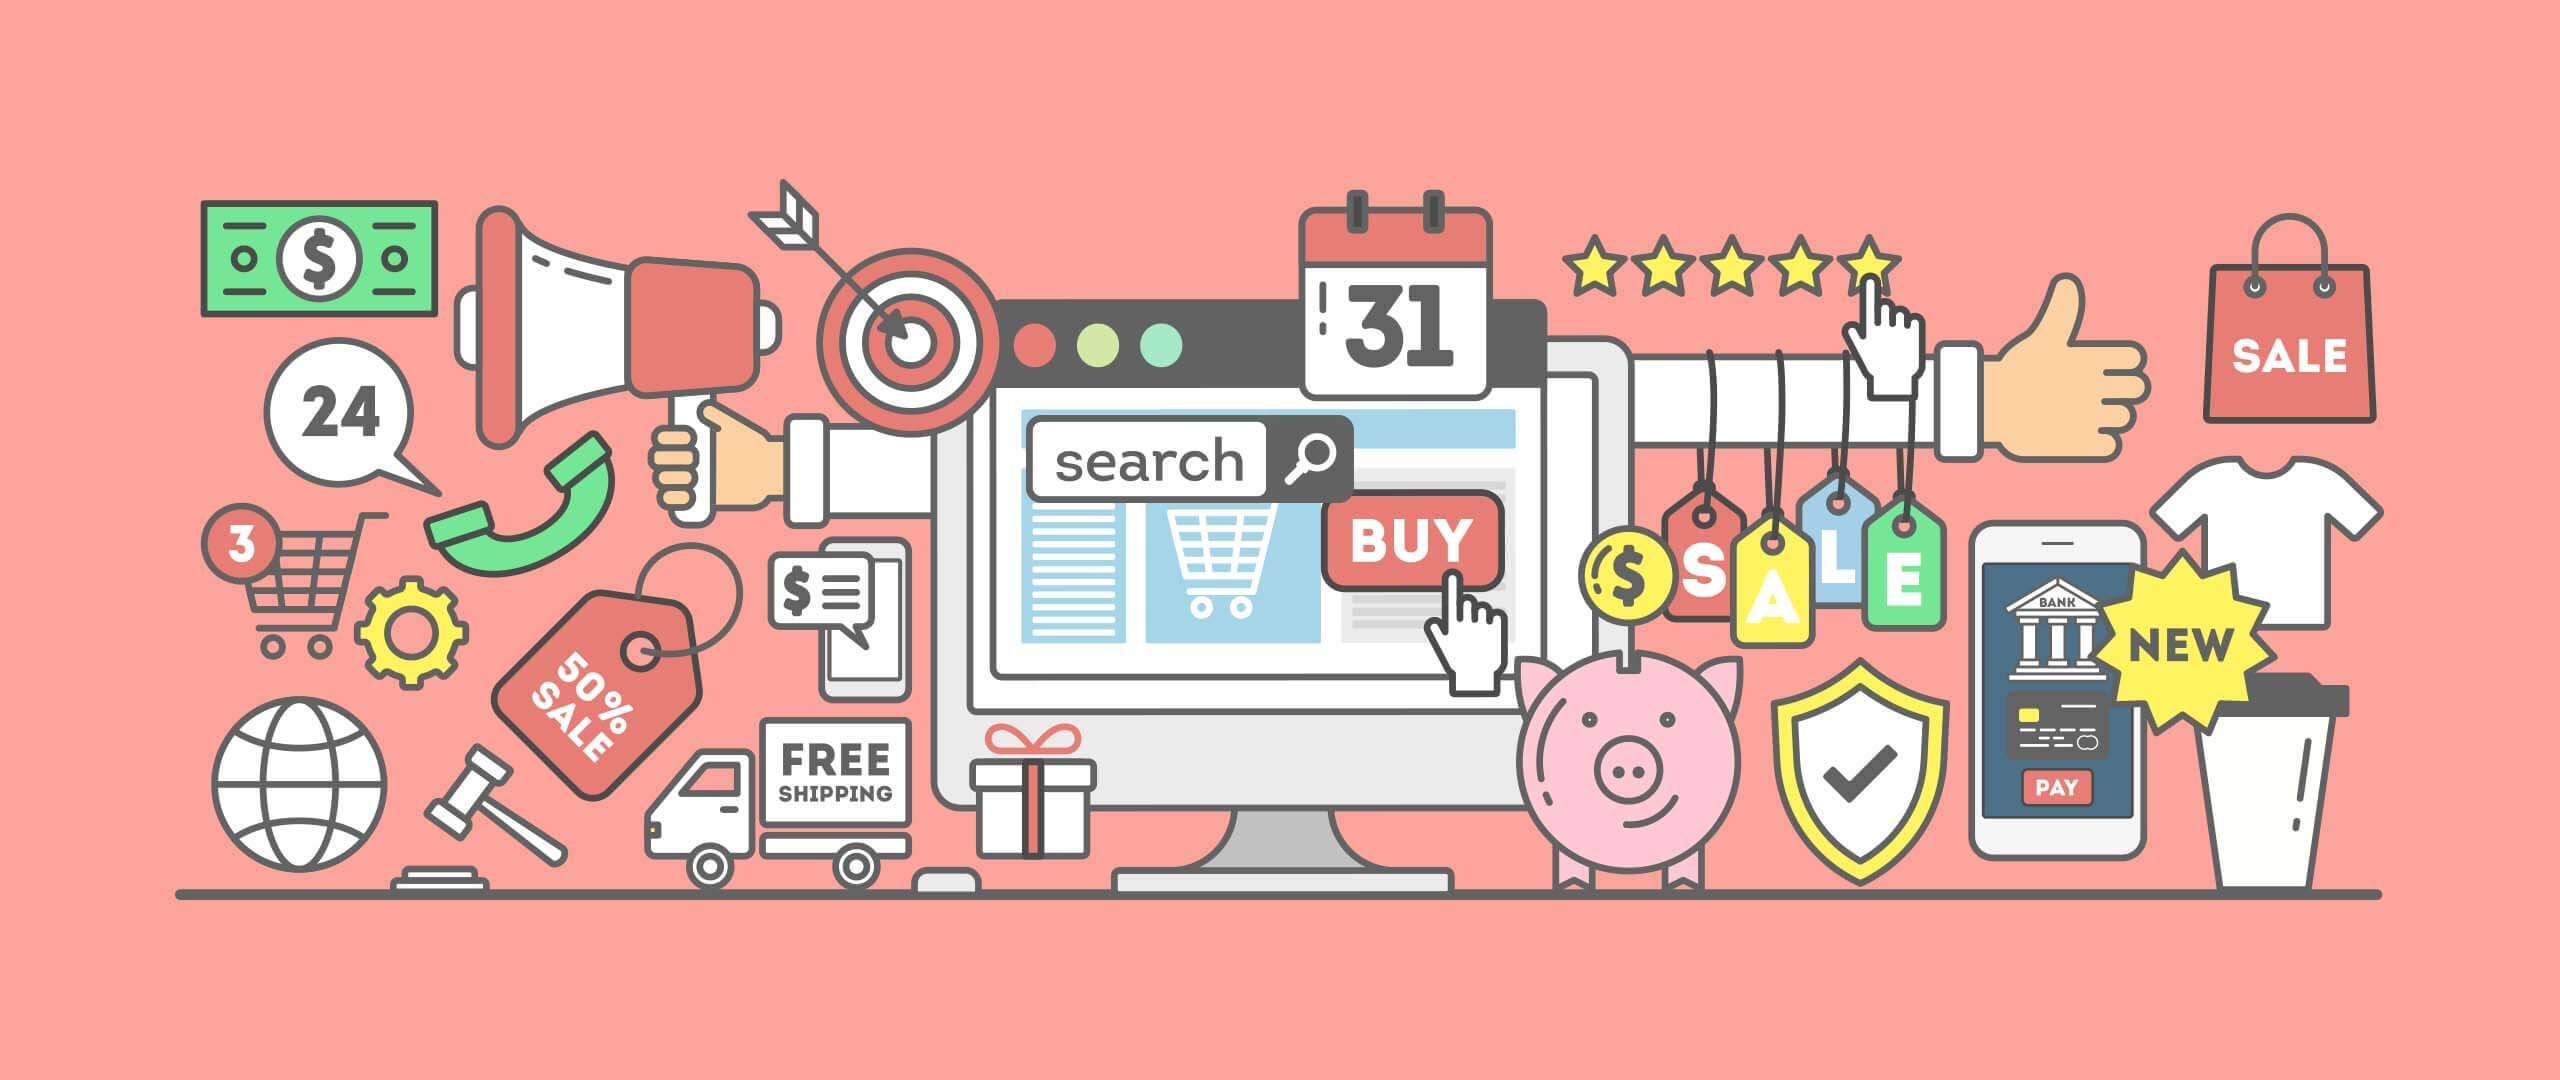 Online Marketplaces: Best Platforms For Selling Products